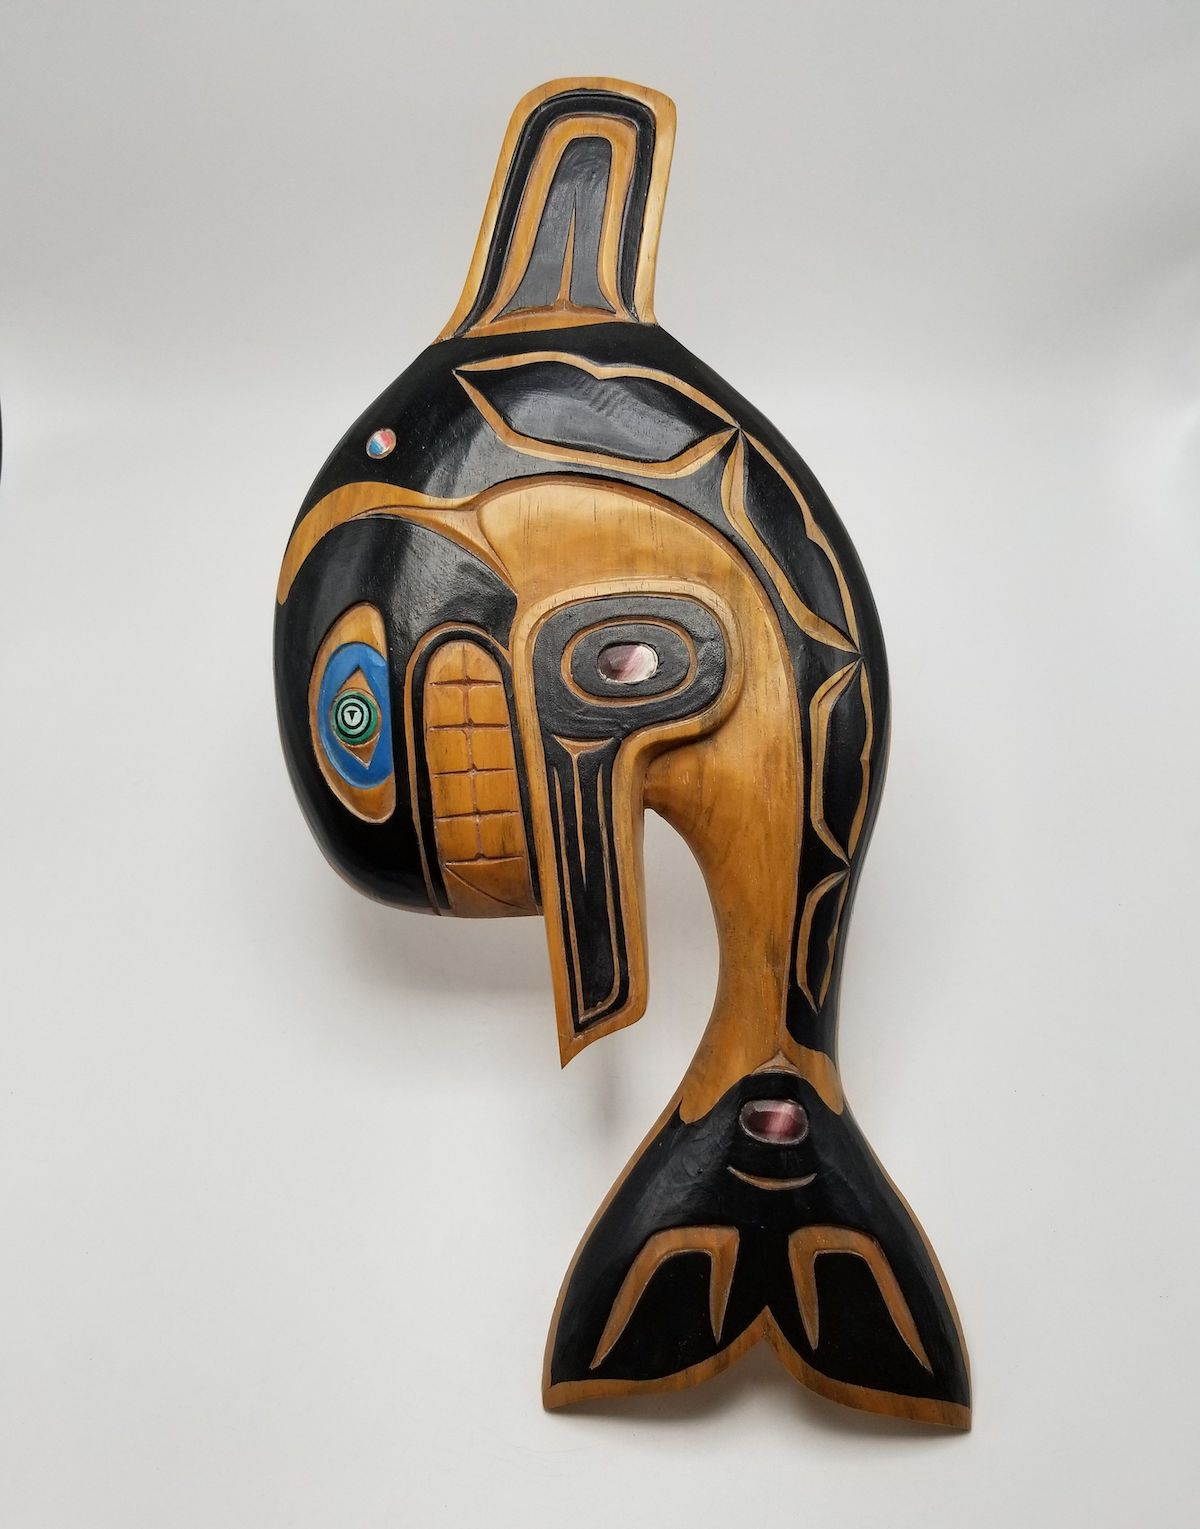 Orca carving by Tsleil-Waututh artist Artie George. Item: NVMA 2016.7.1